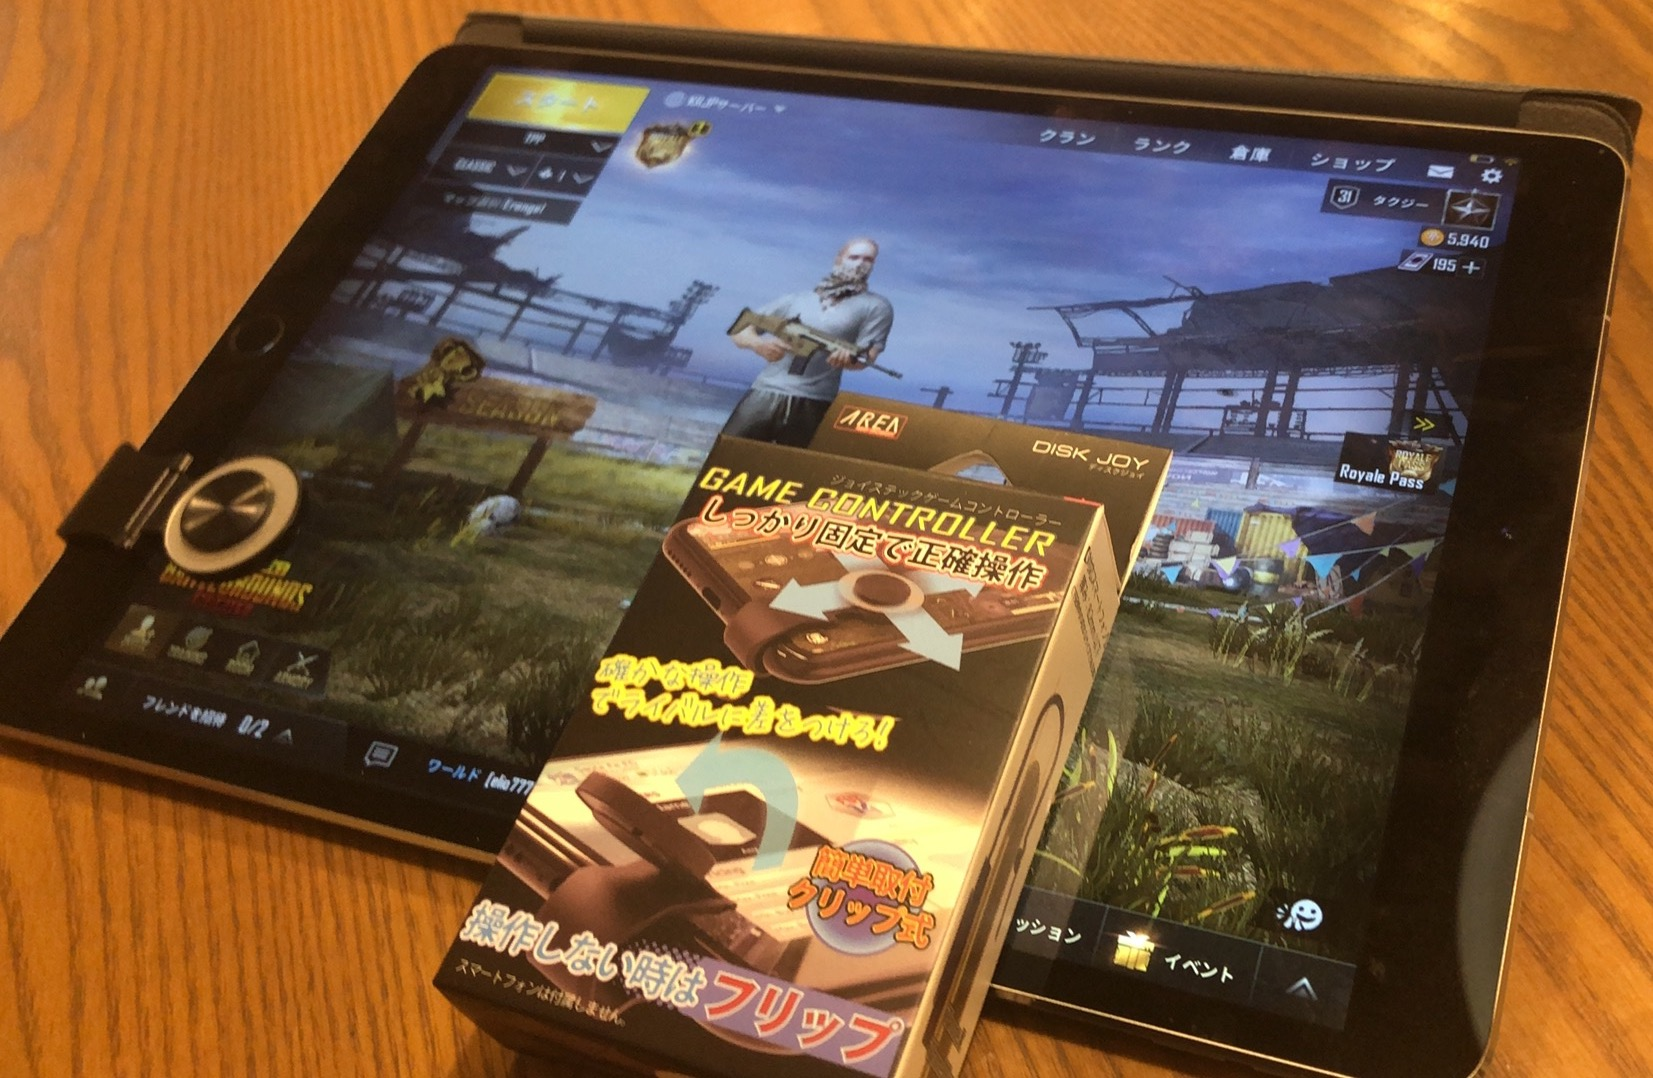 journey-of-pubg-mobile-controller-for-ipad-iphone-1